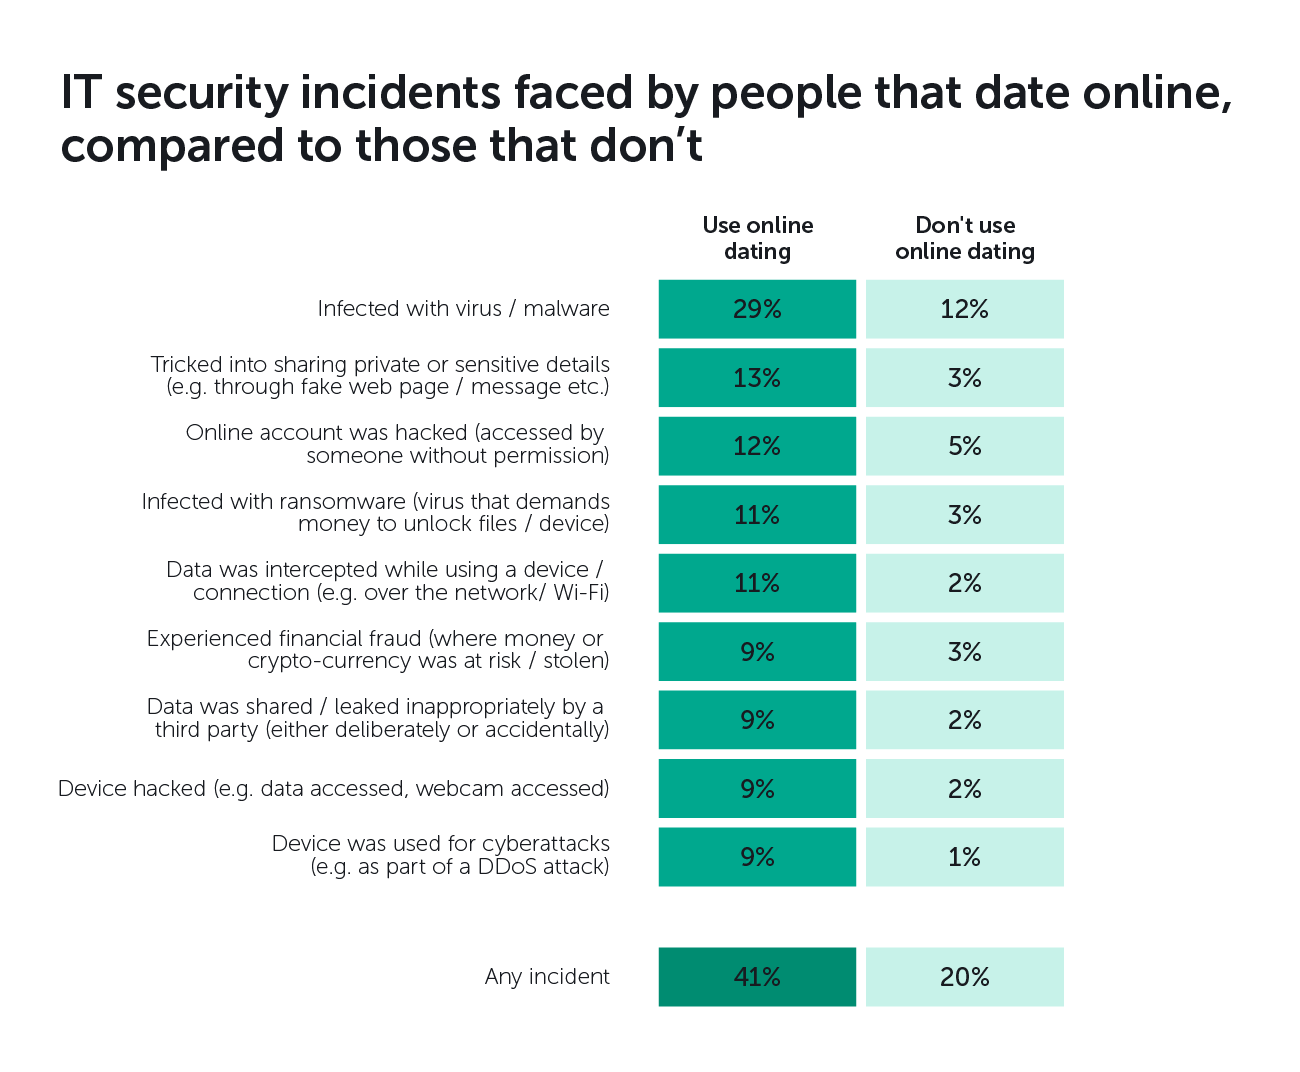 ... compared to just 12% who don't use online dating. In addition, around  one-in-ten have had their device hacked, have had their data infected,  shared, ...